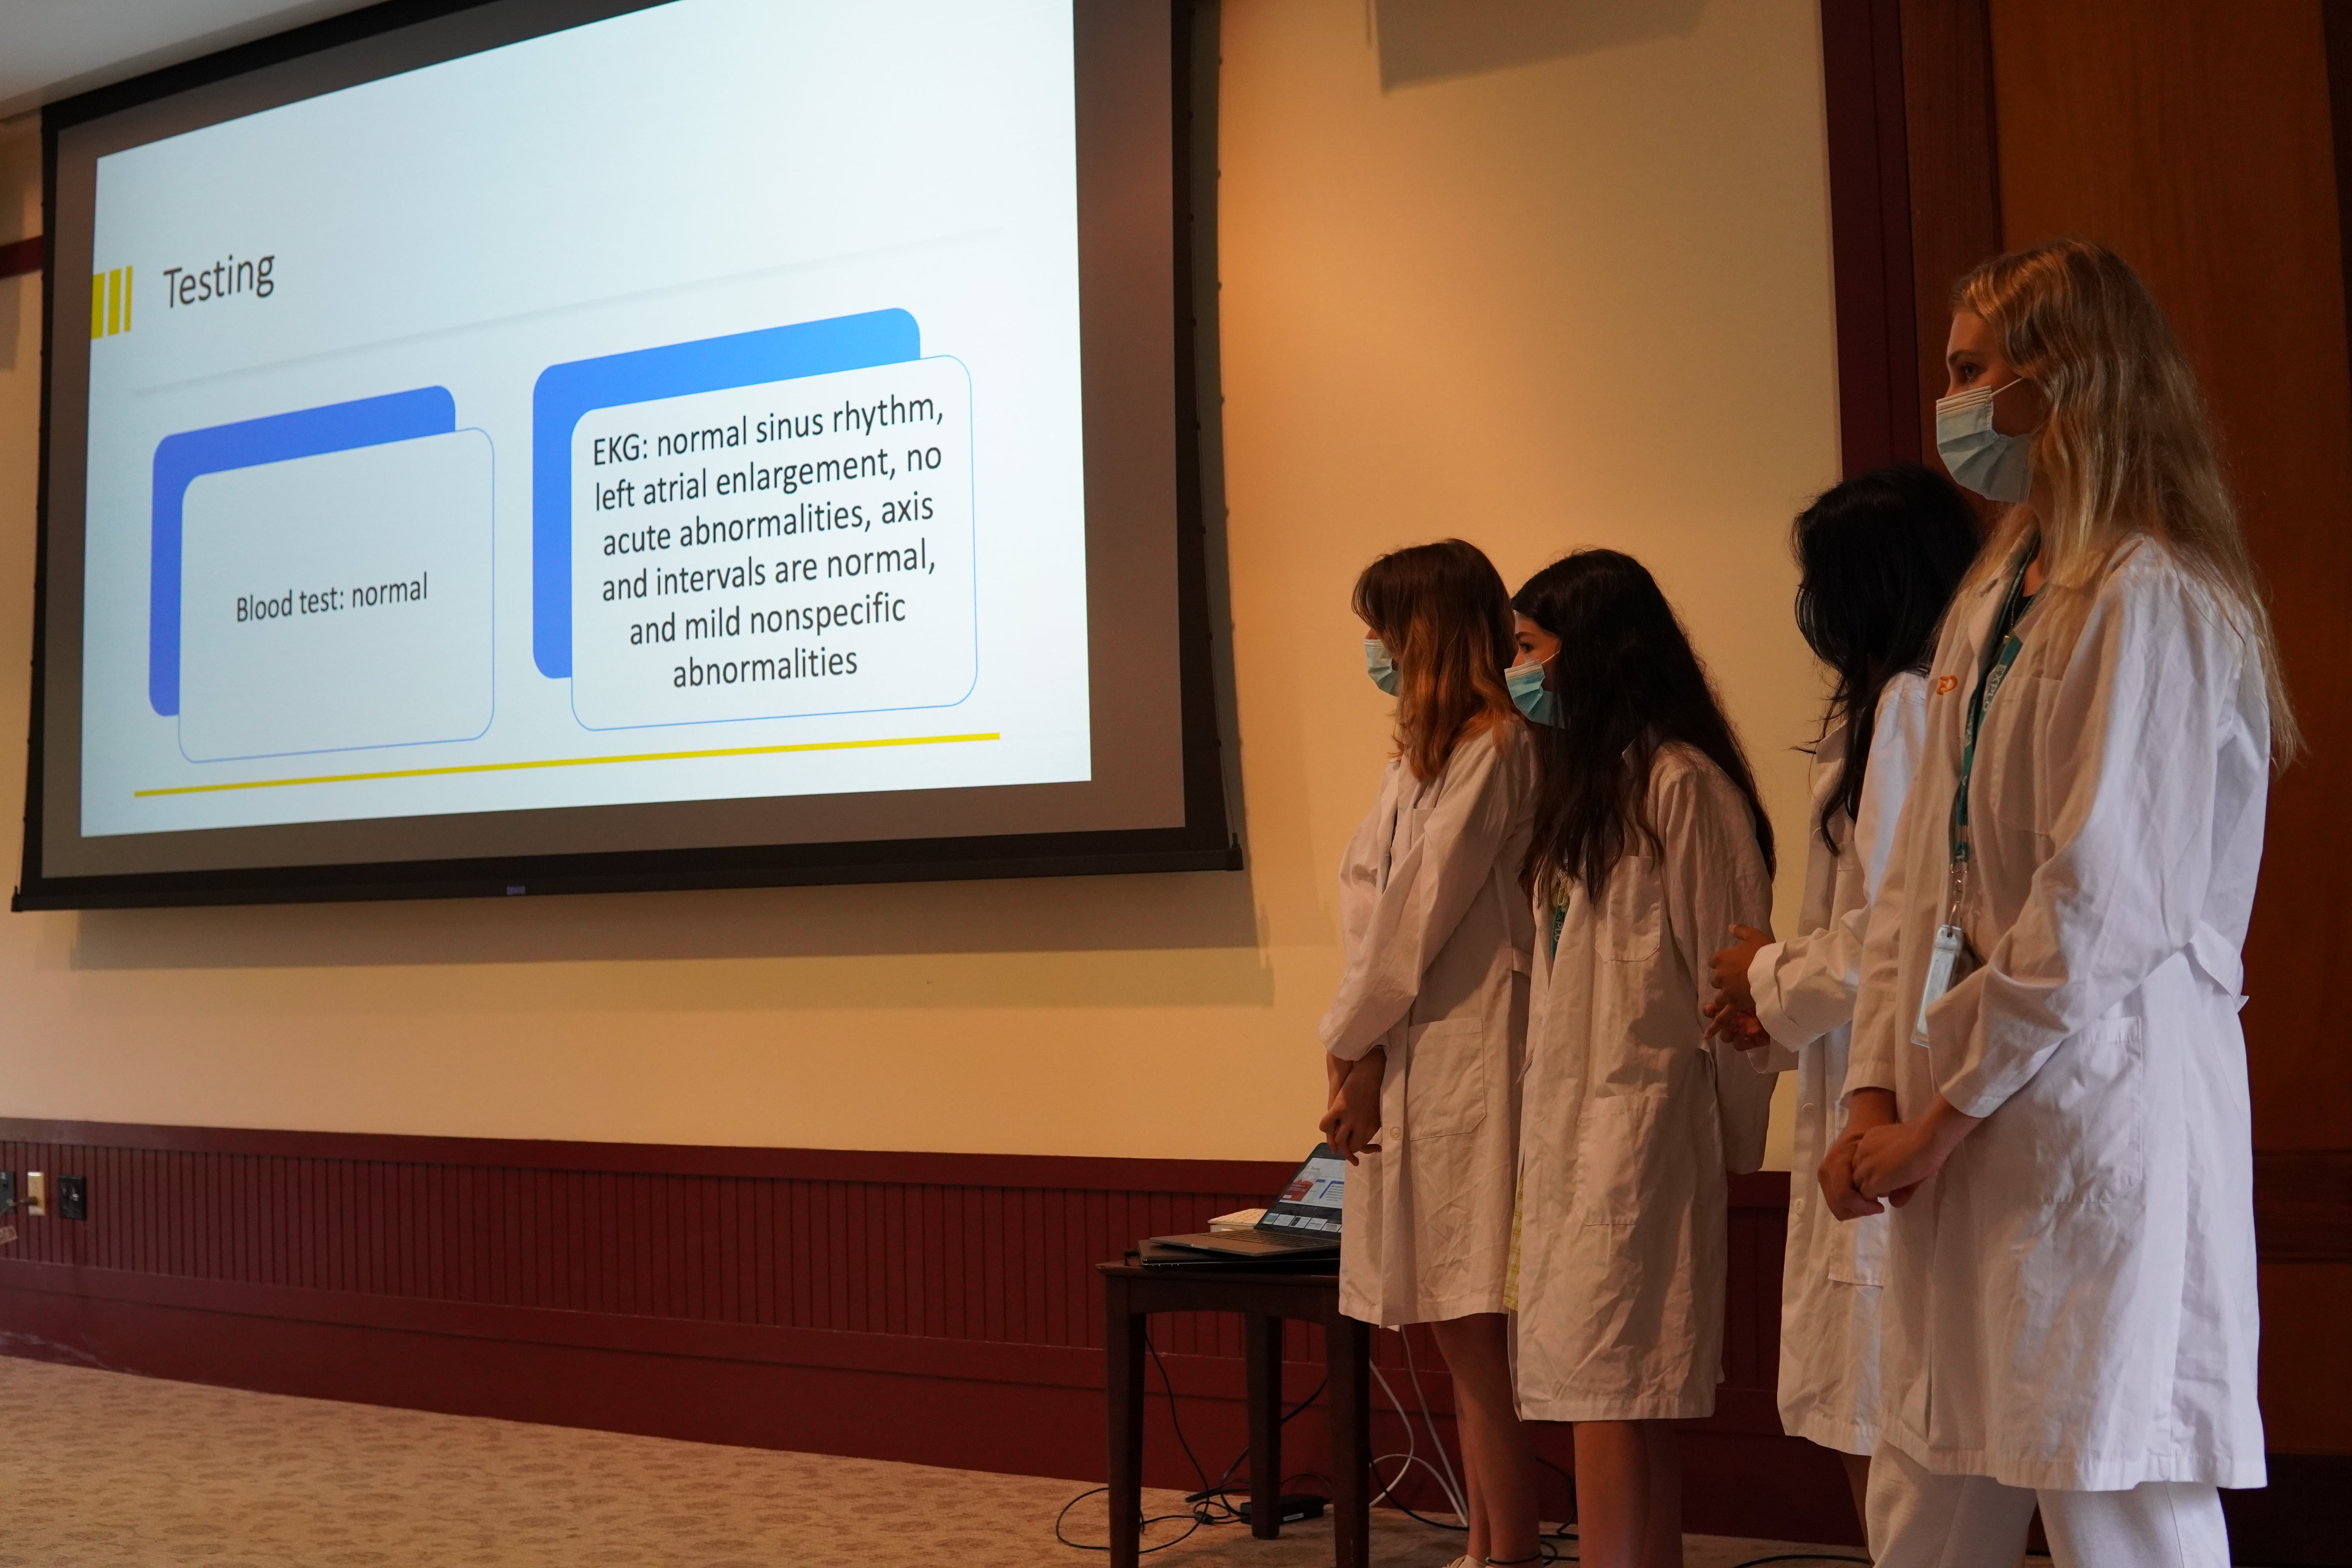 Students take their place at the front of the lecture hall and begin discussing the test they did on their hypothetical patient.